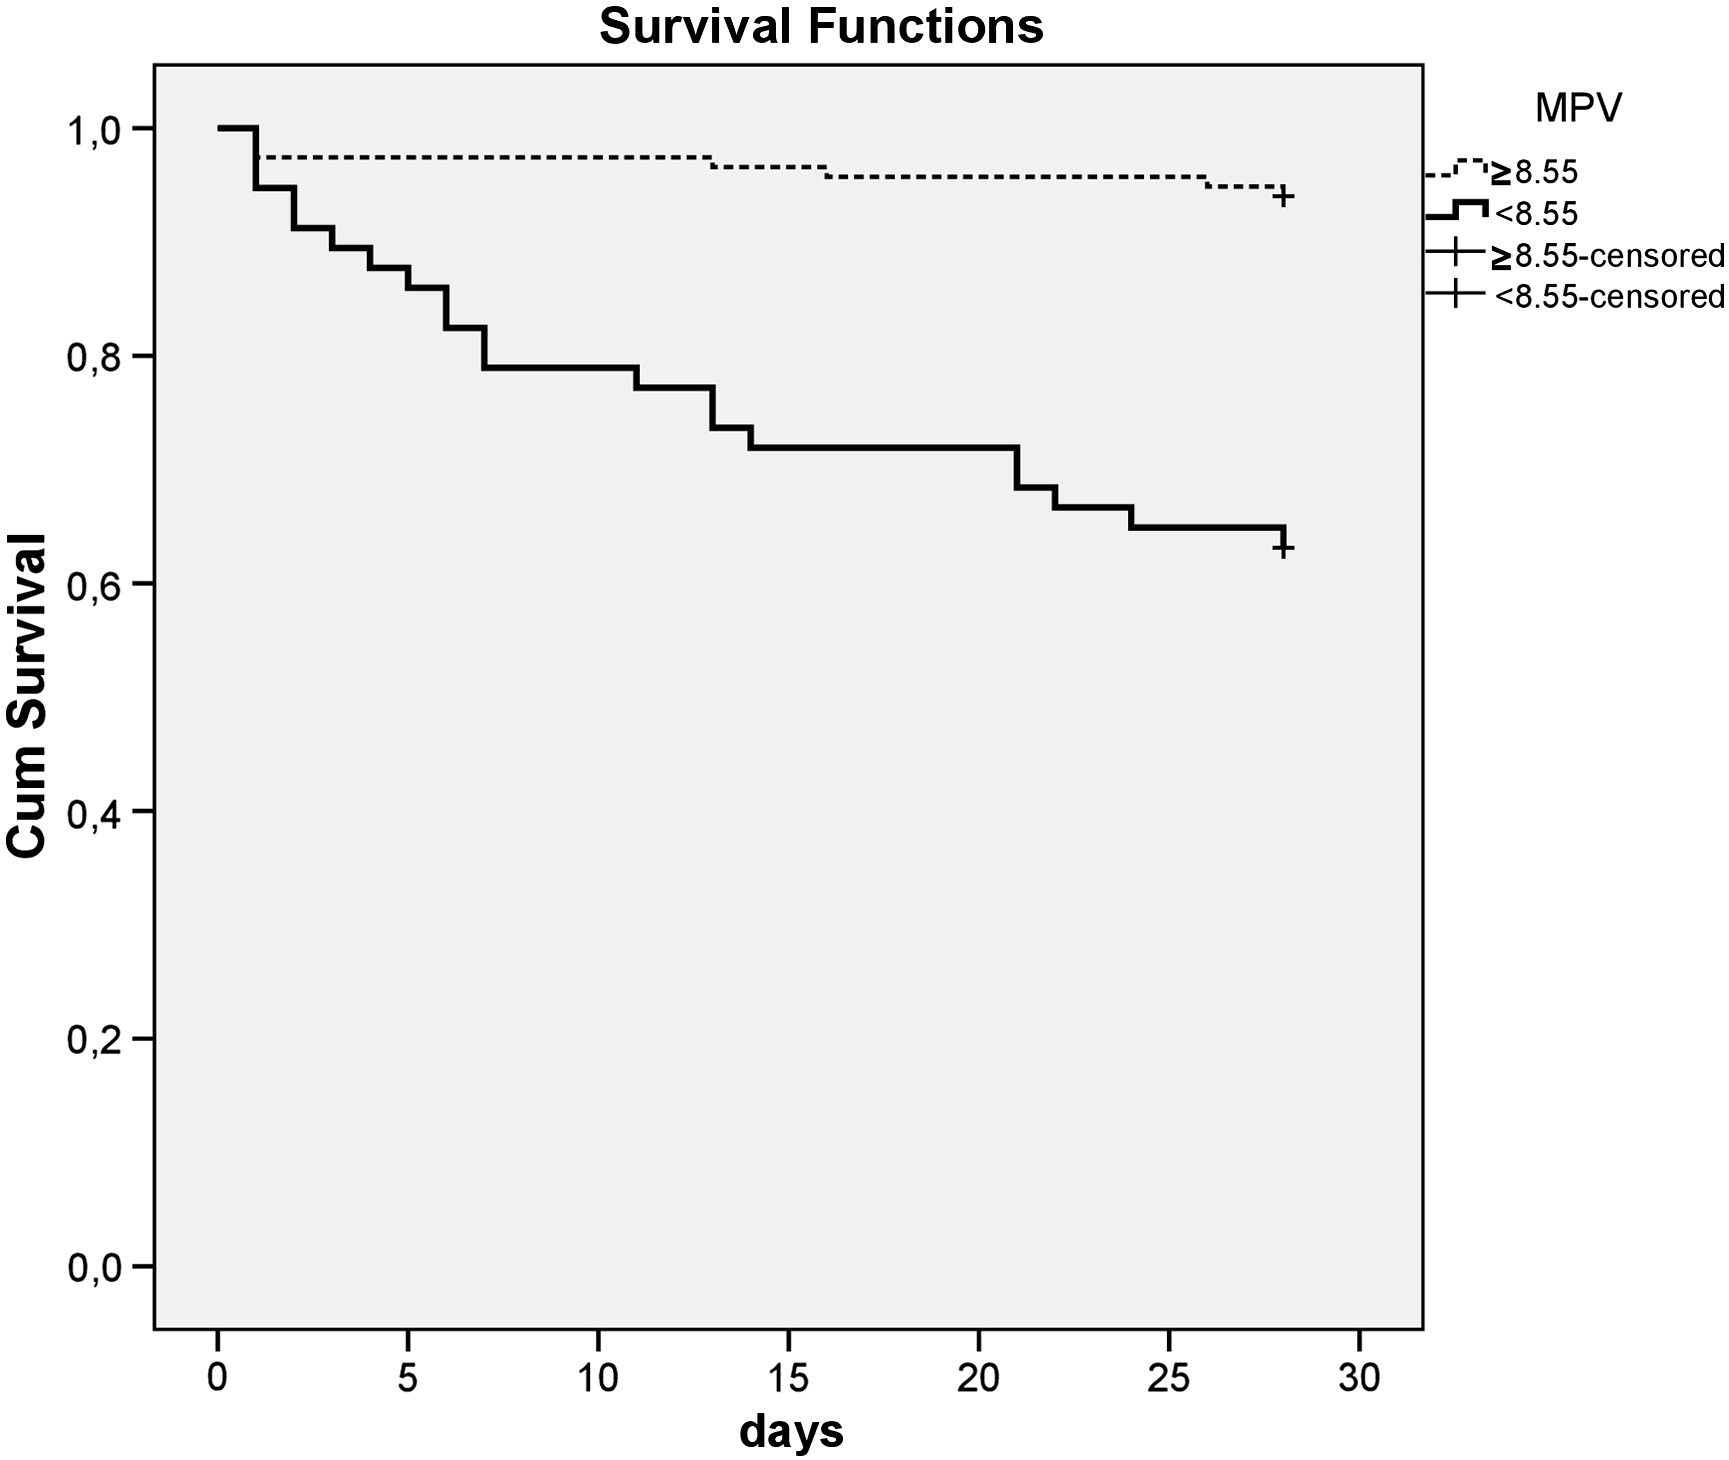 Combination Of Mean Platelet Volume And The Curb 65 Score Better Predicts 28 Day Mortality In